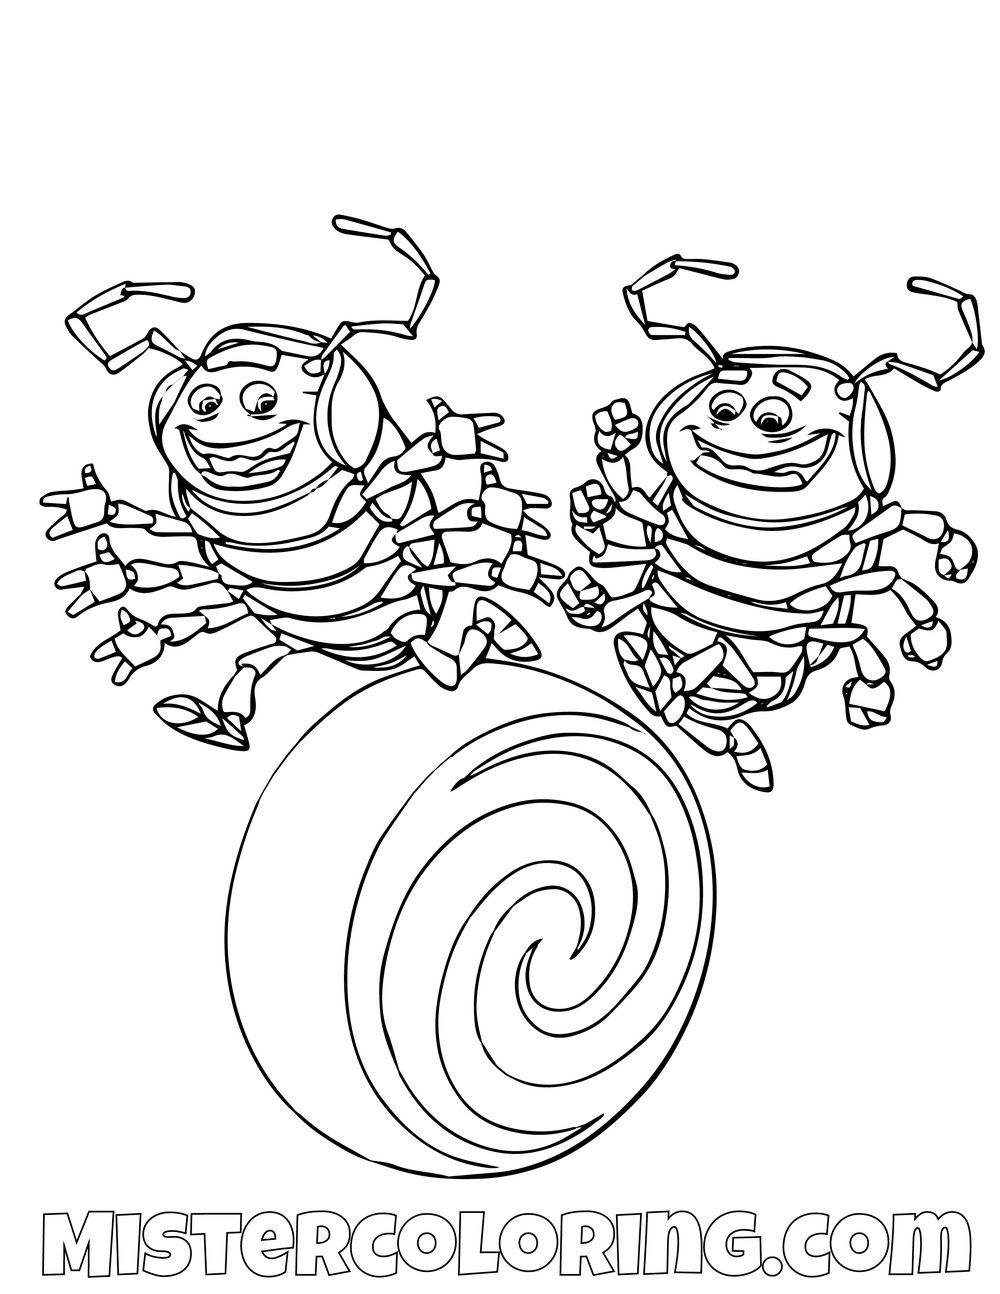 Tuck And Roll A Bugs Life Coloring Page For Kids Unicorn